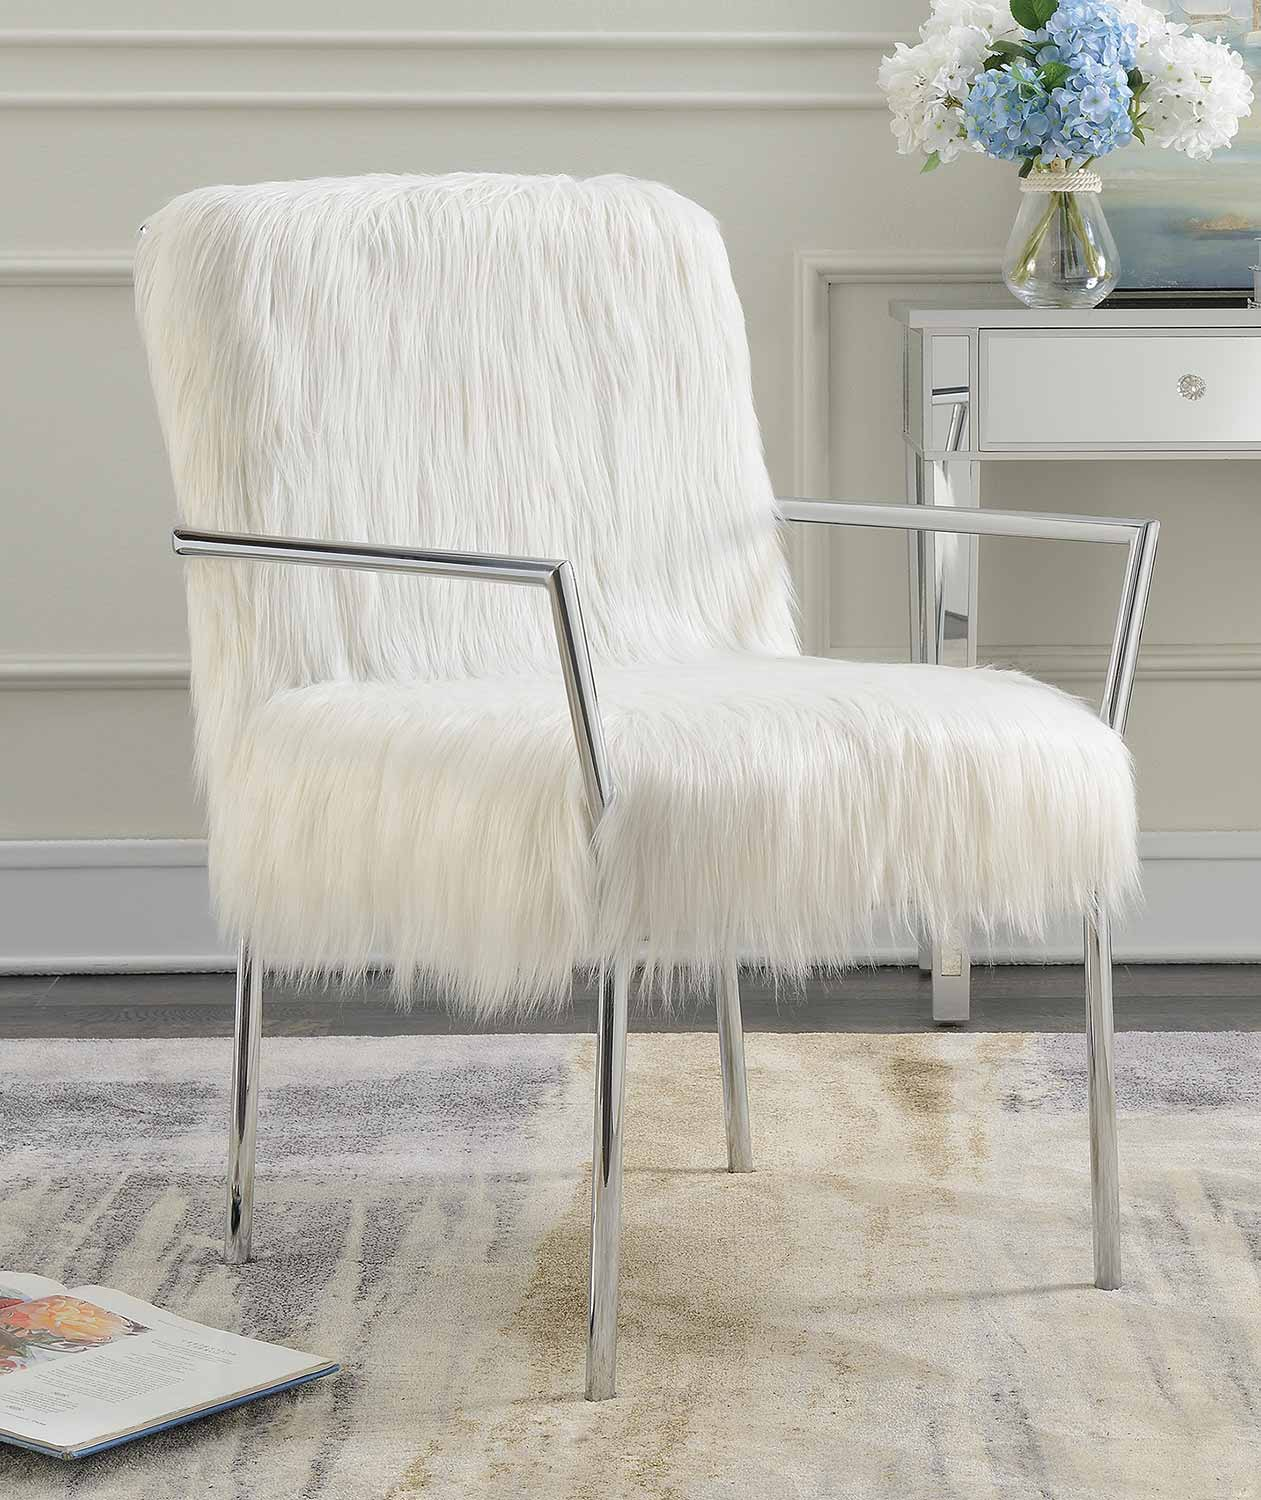 Coaster 904079 Accent Chair - White/Chrome